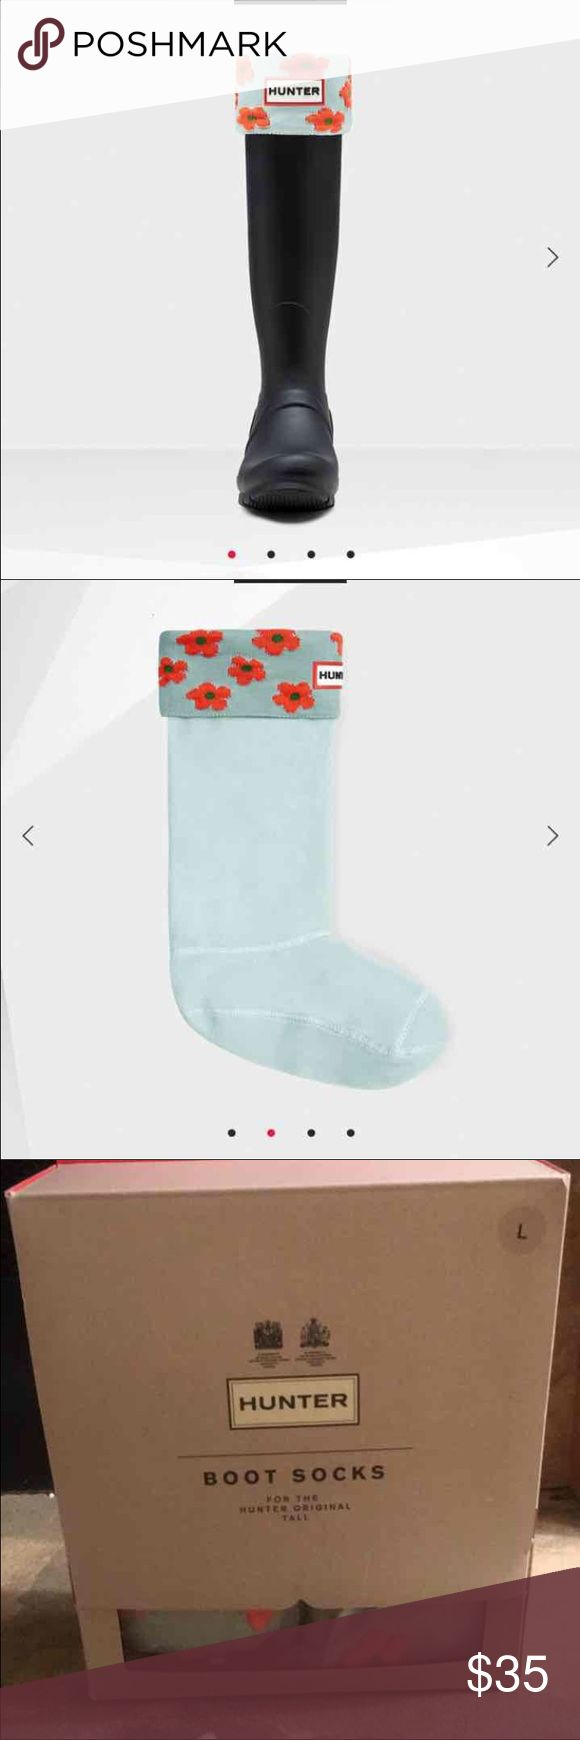 Hunter Boot Socks in Floral These Hunter boot socks are made from soft acrylic fleece with a floral cuff. The boot sock is designed to enhance fit while giving added comfort and warmth. They can be worn folded over to add contrast detail and personalise your Hunter rain boots.  Foldover cuff with floral knit detail Acrylic fleece leg Designed to fit the Original Tall rain boot Hunter Boots Accessories Hosiery & Socks